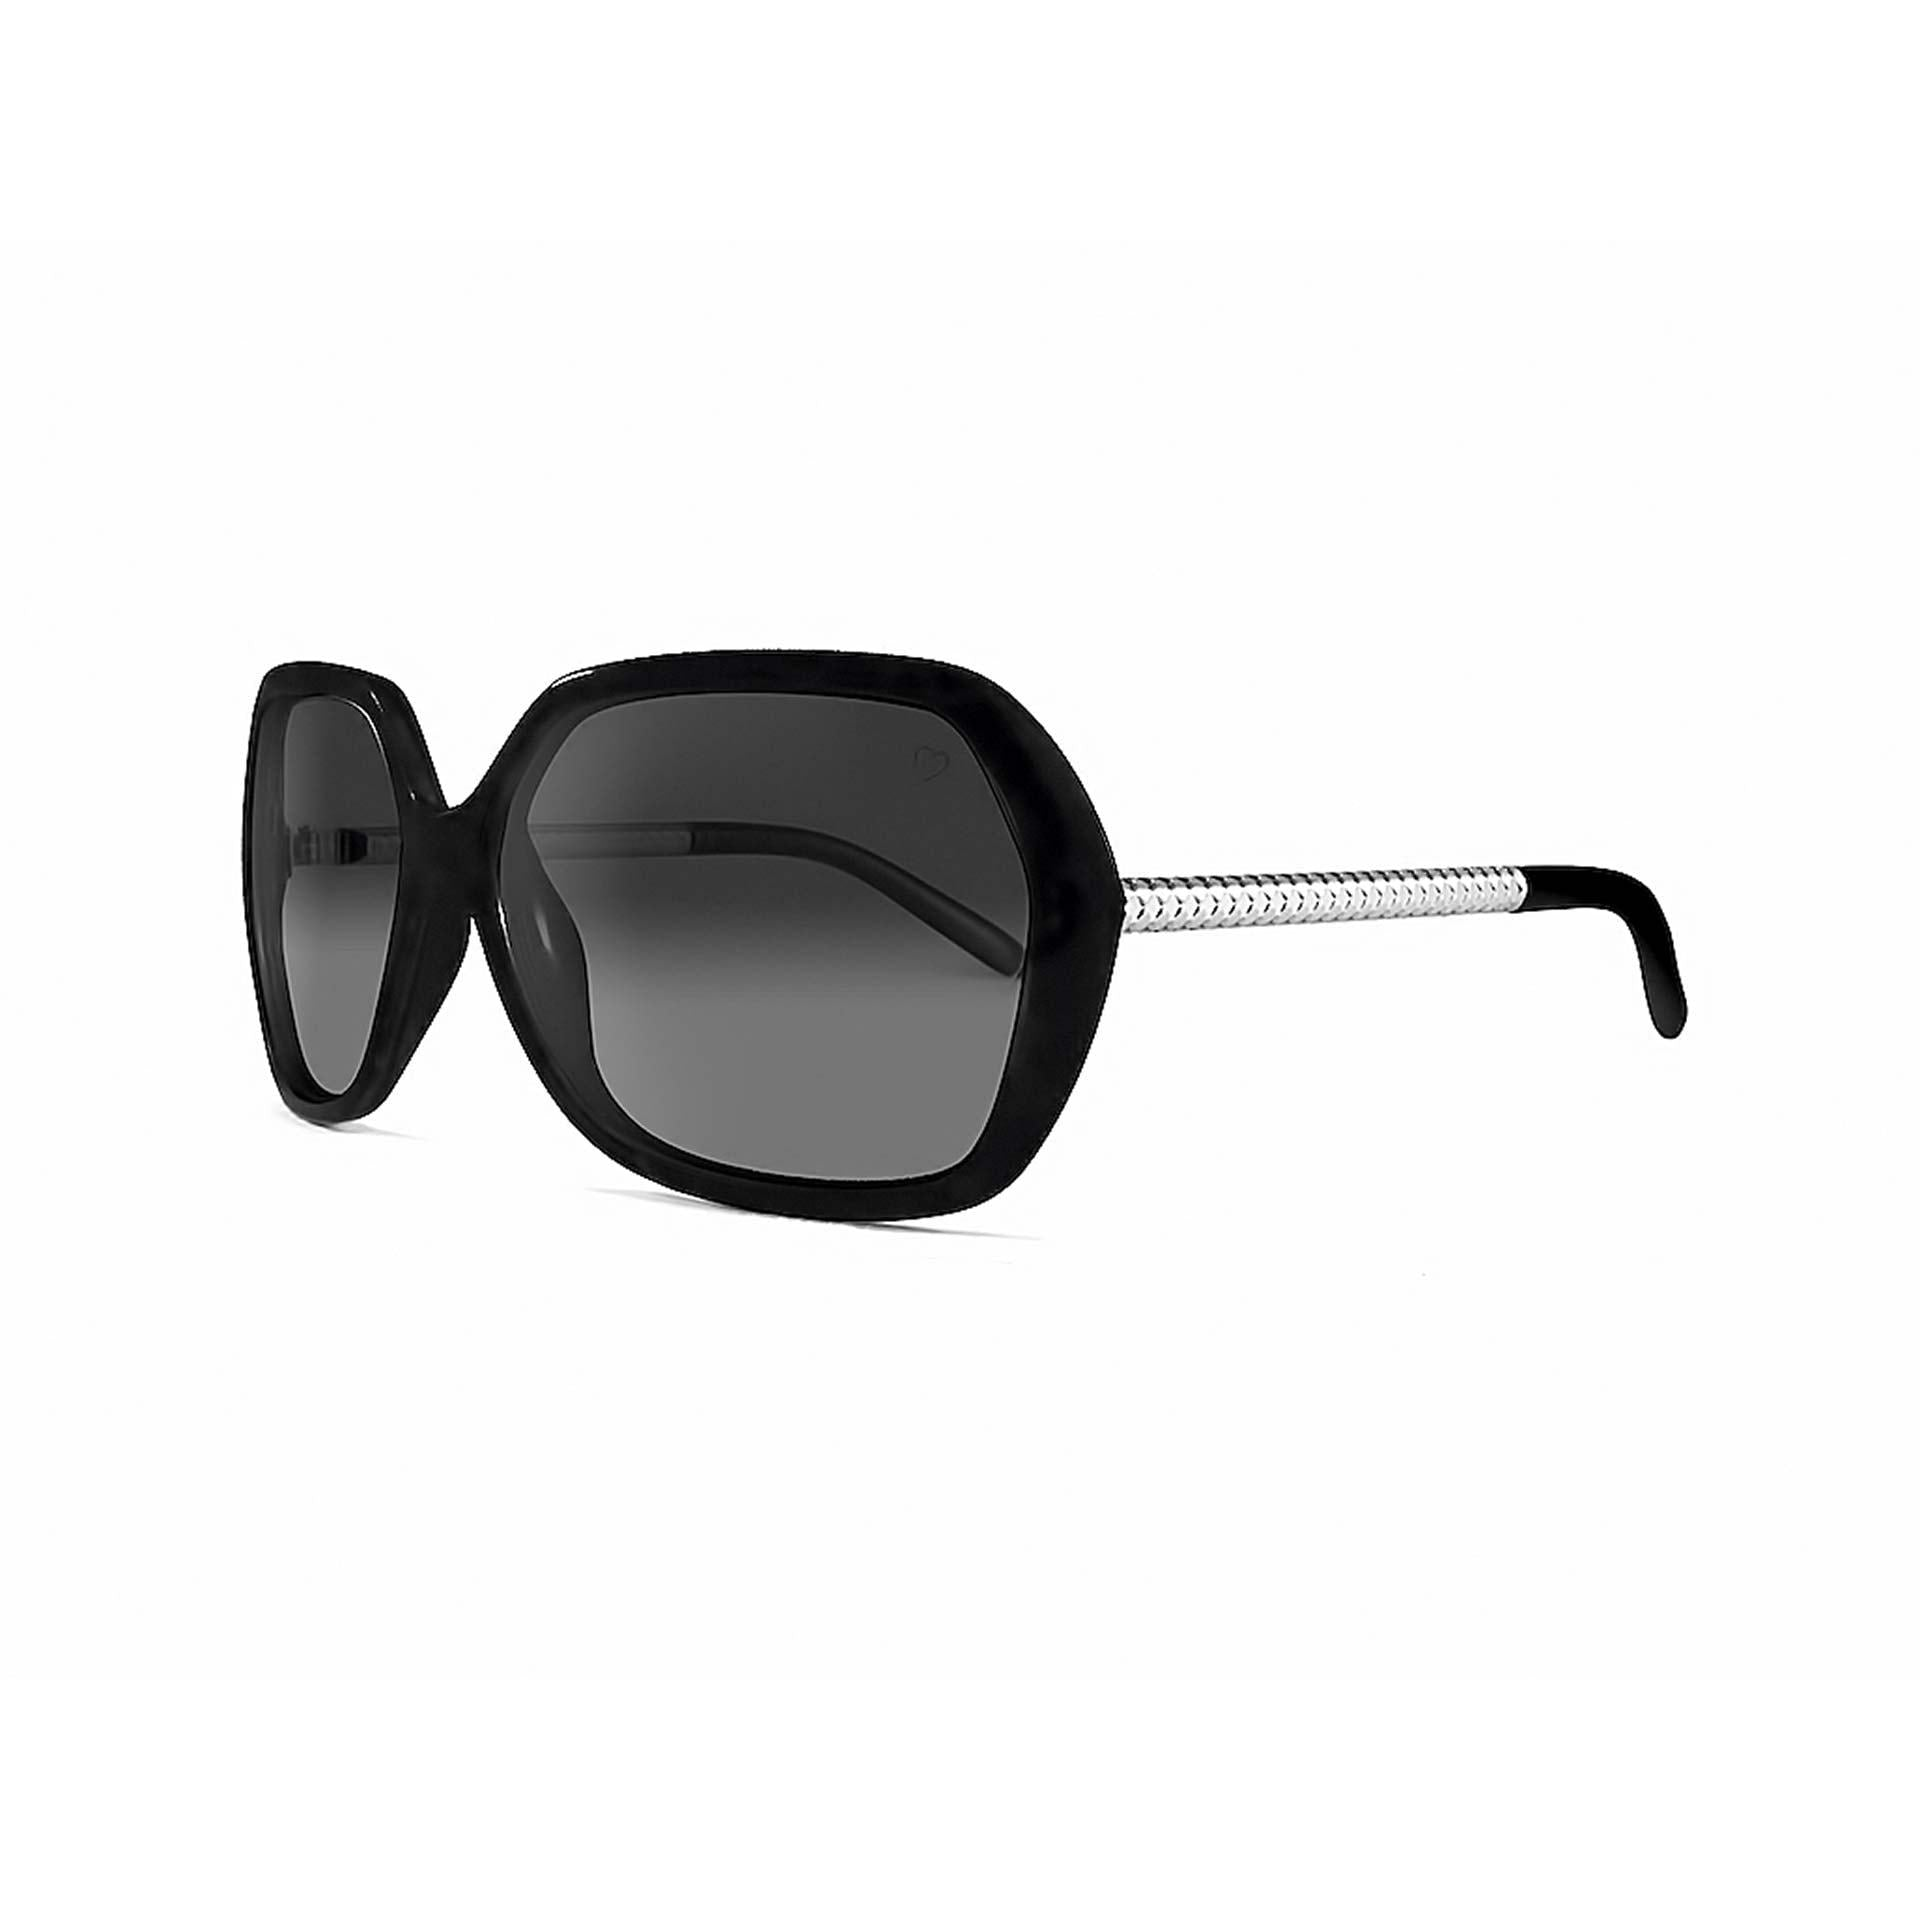 Ladies 'Paris' Oversized Sunglasses In Black